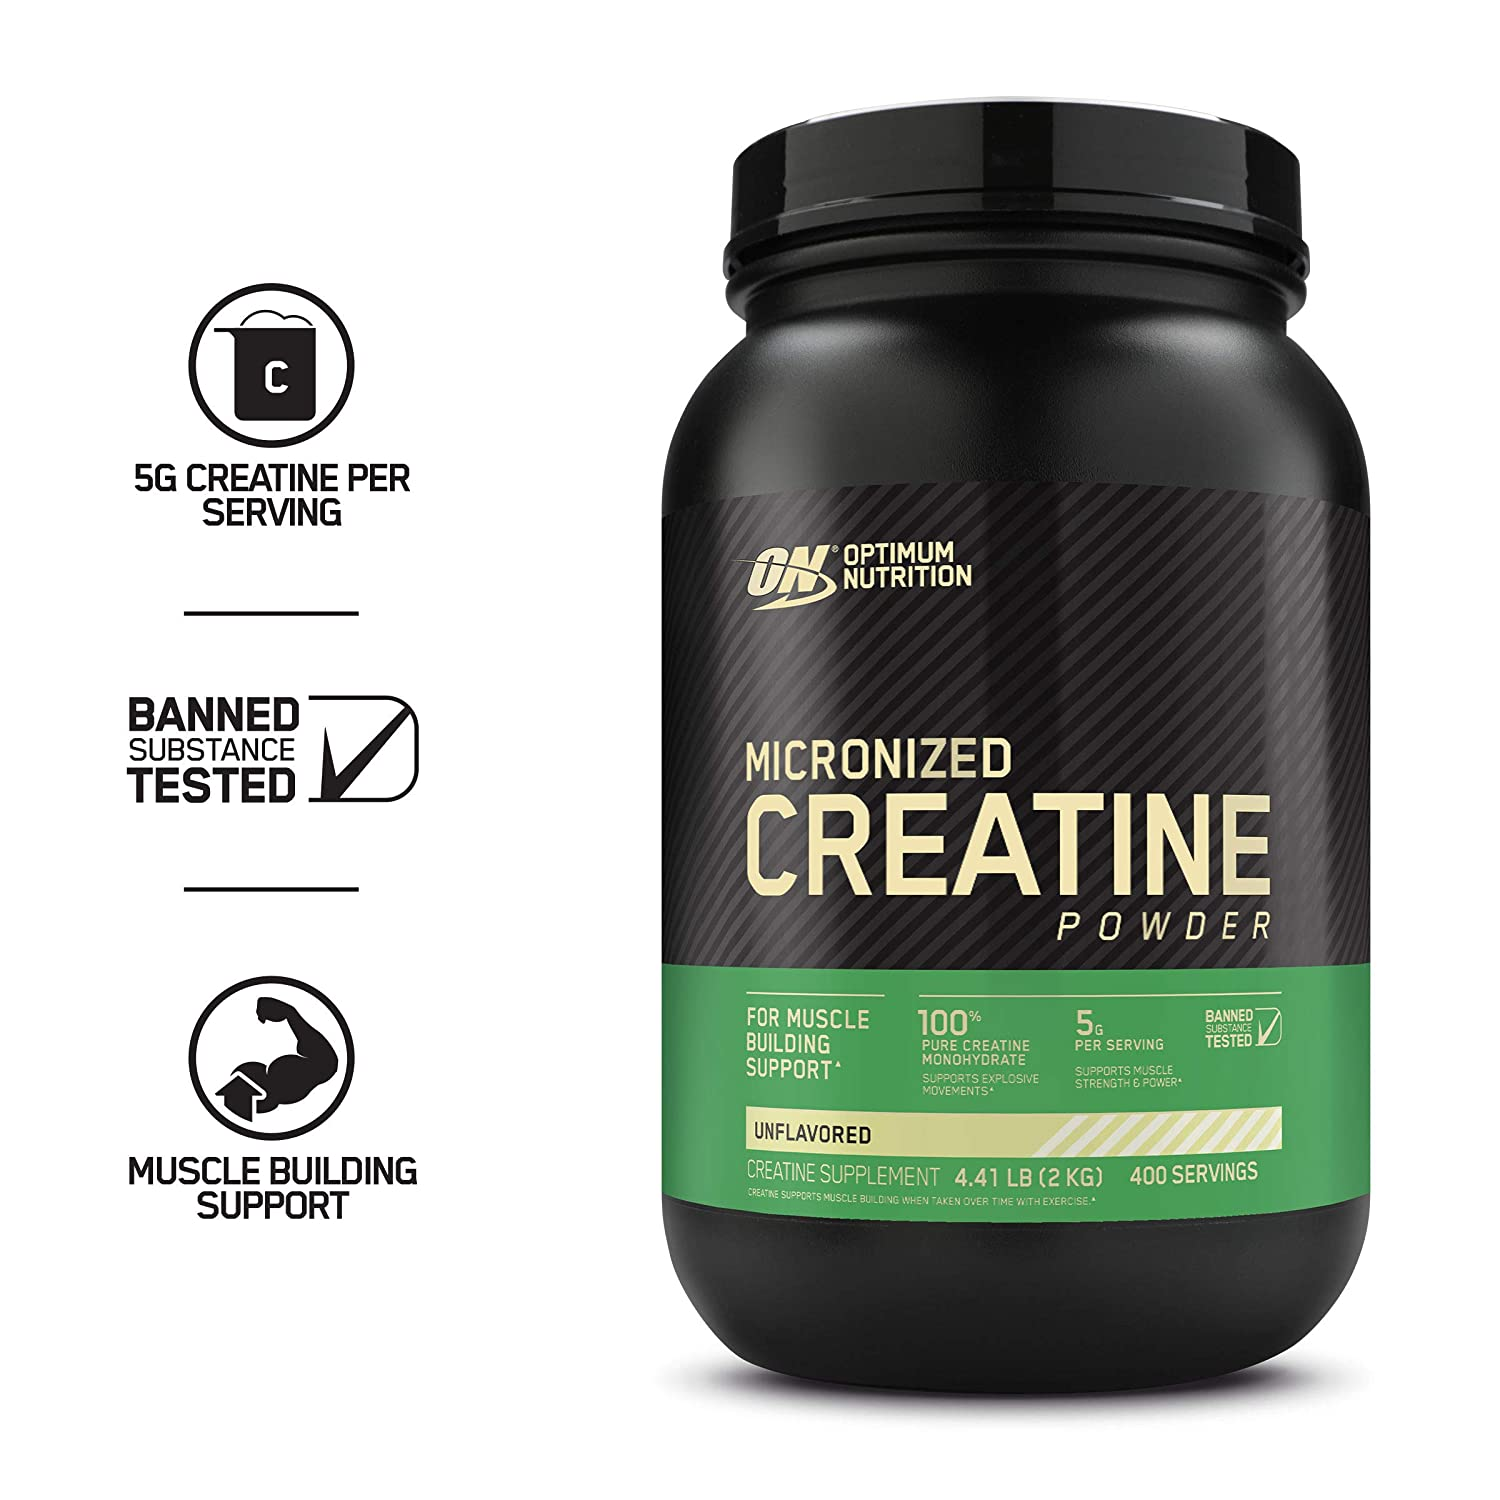 Amazon.com: Optimum Nutrition MICRONIZED CREATINE polvo ...